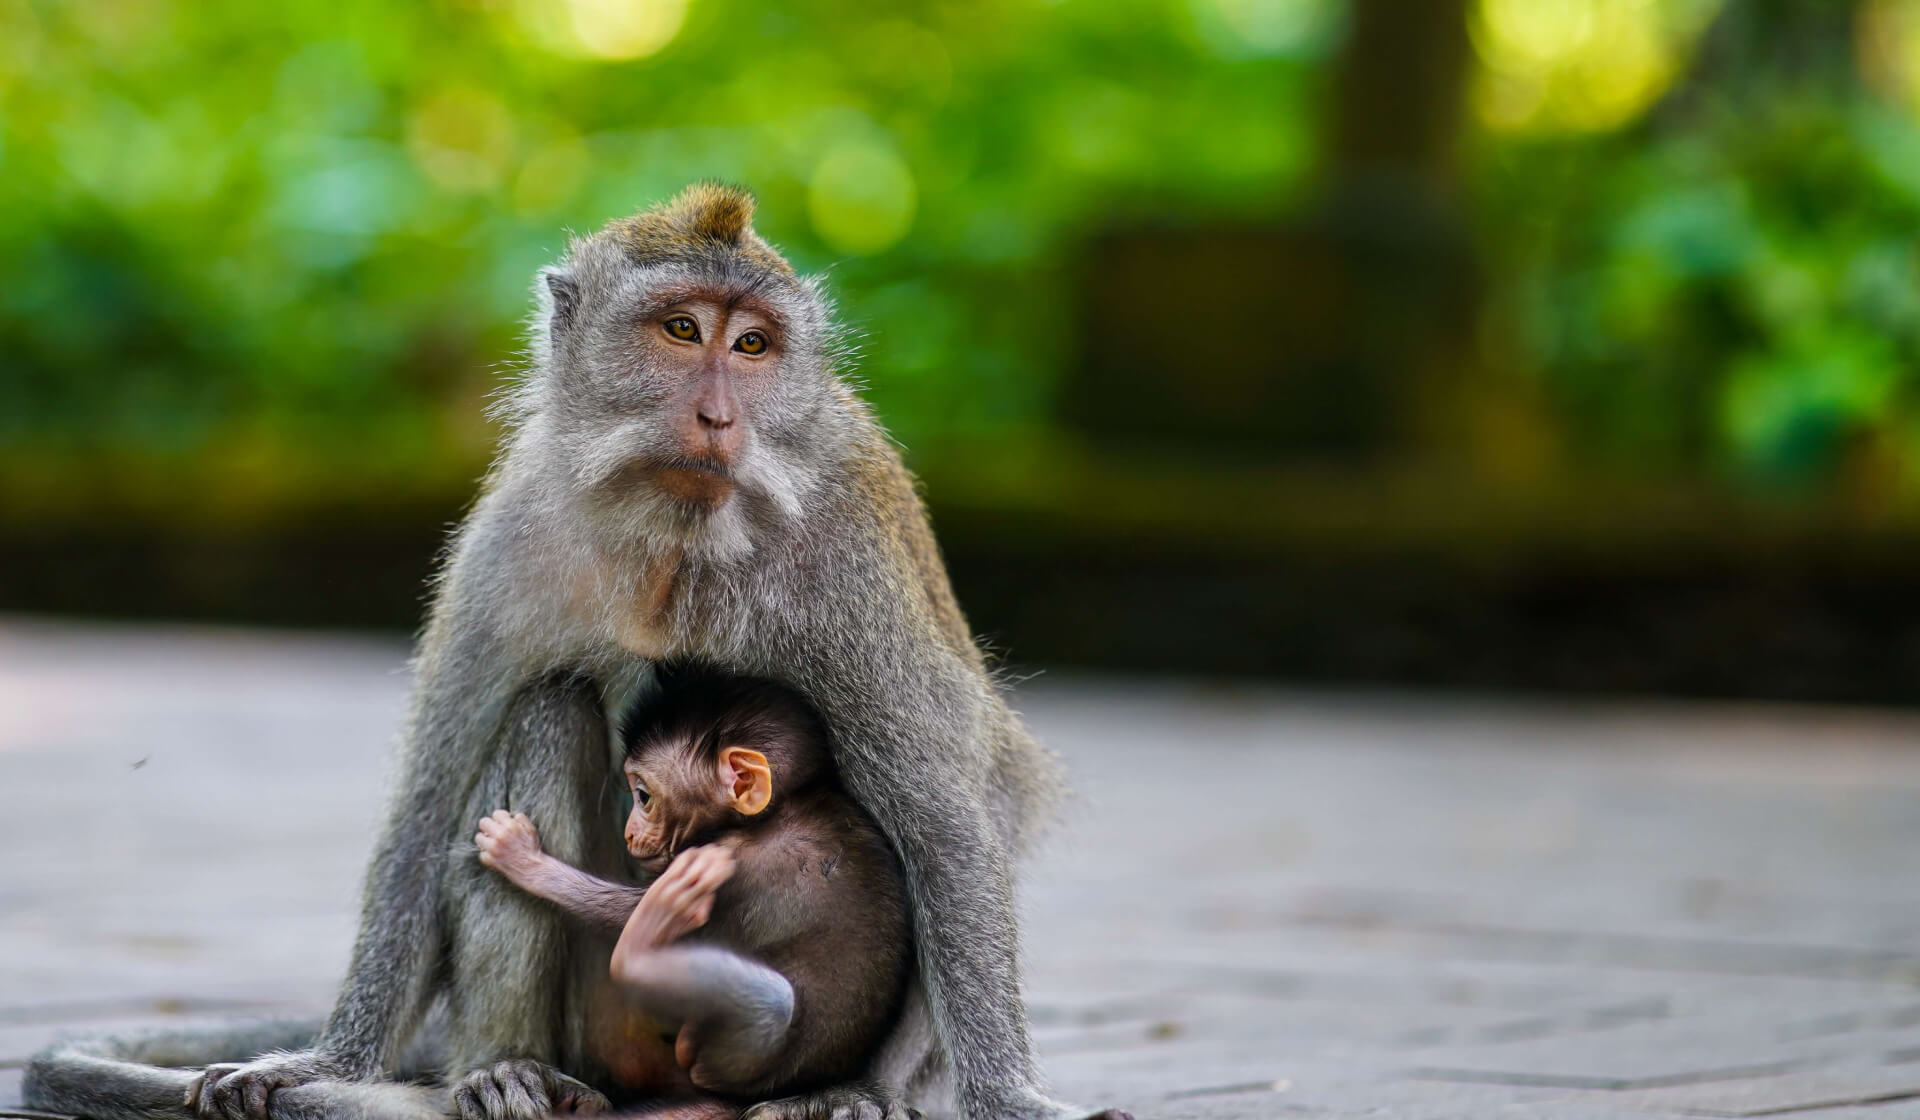 Mother monkey holding a little baby monkey in the Sacred Monkey Forest in Ubud, Bali